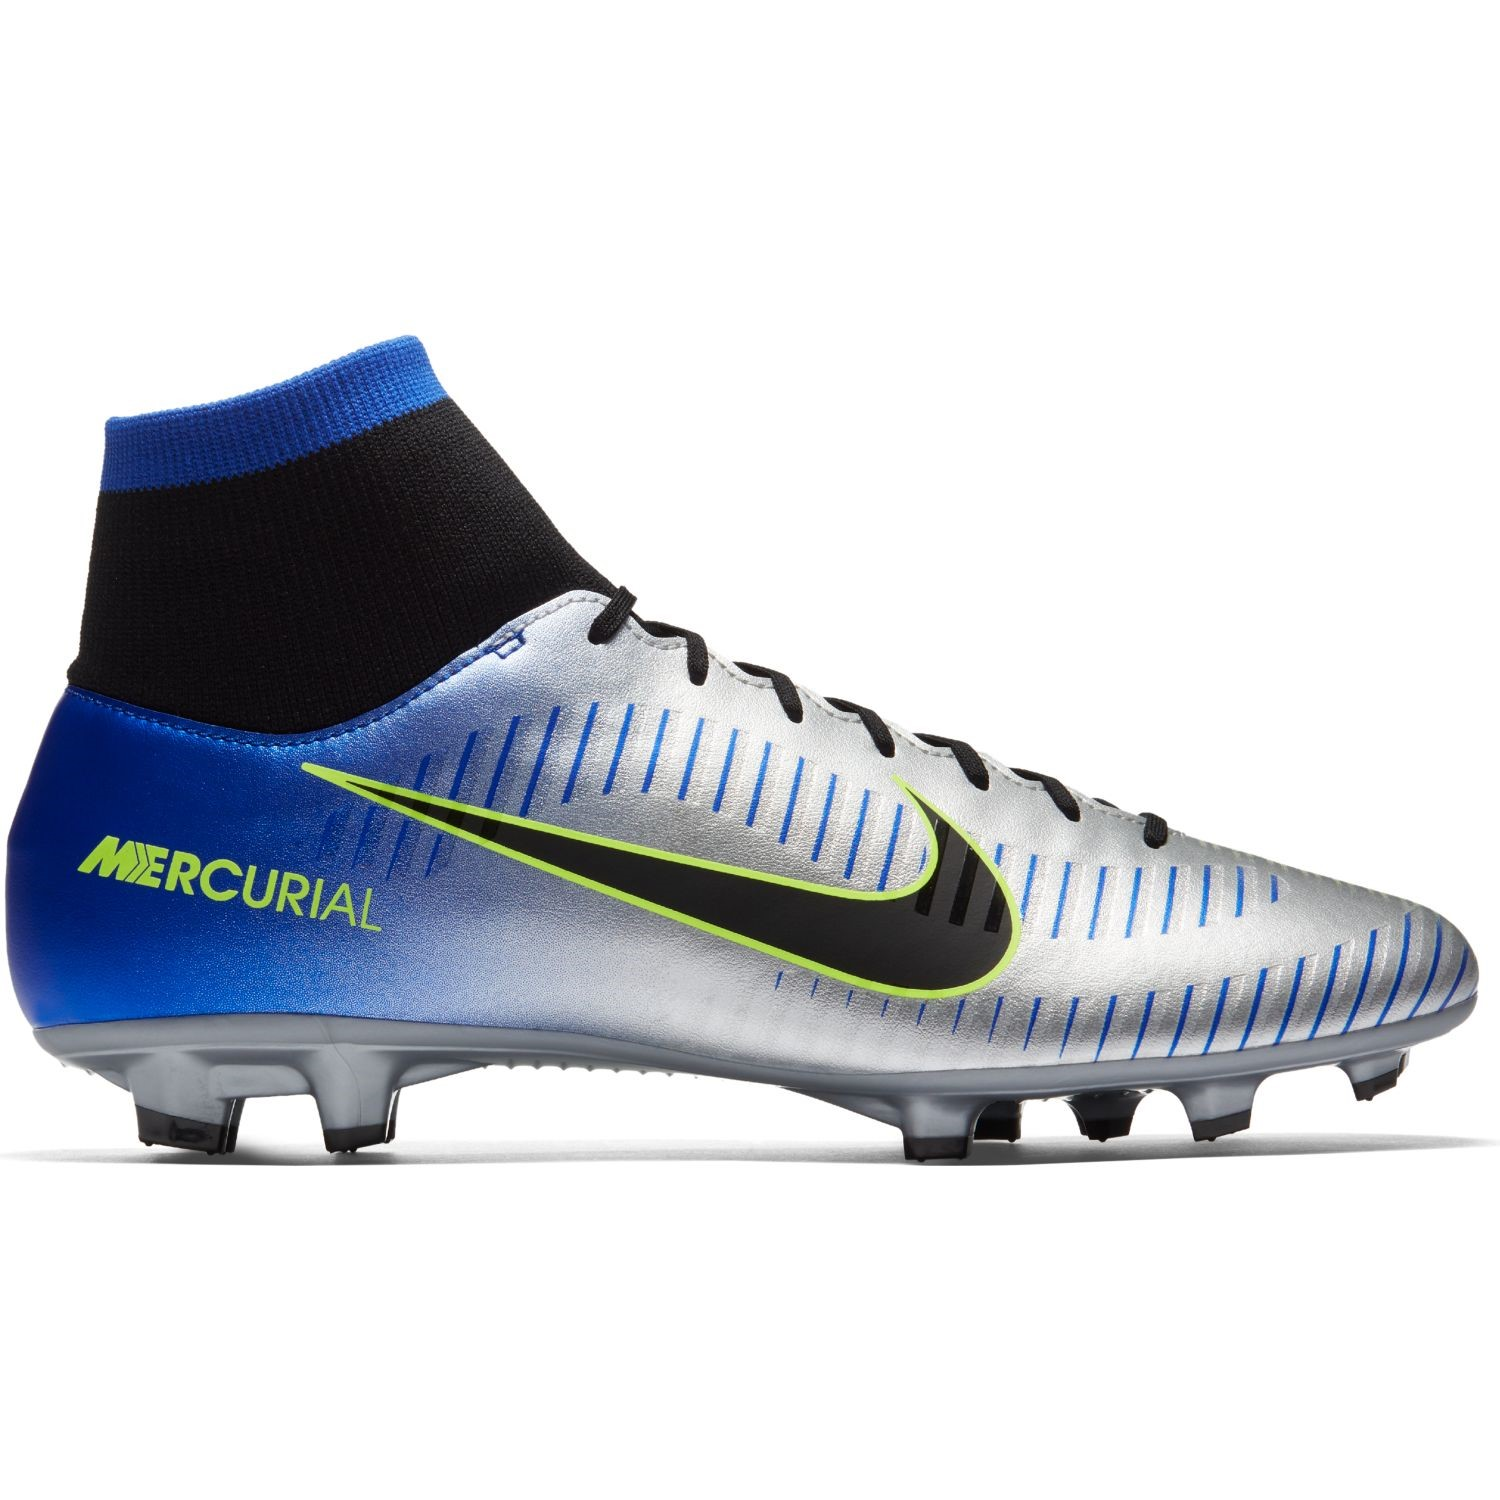 89617cd2d Nike Mercurial Victory VI Dynamic Fit Neymar FG - Mens Football Boots -  Racer Blue